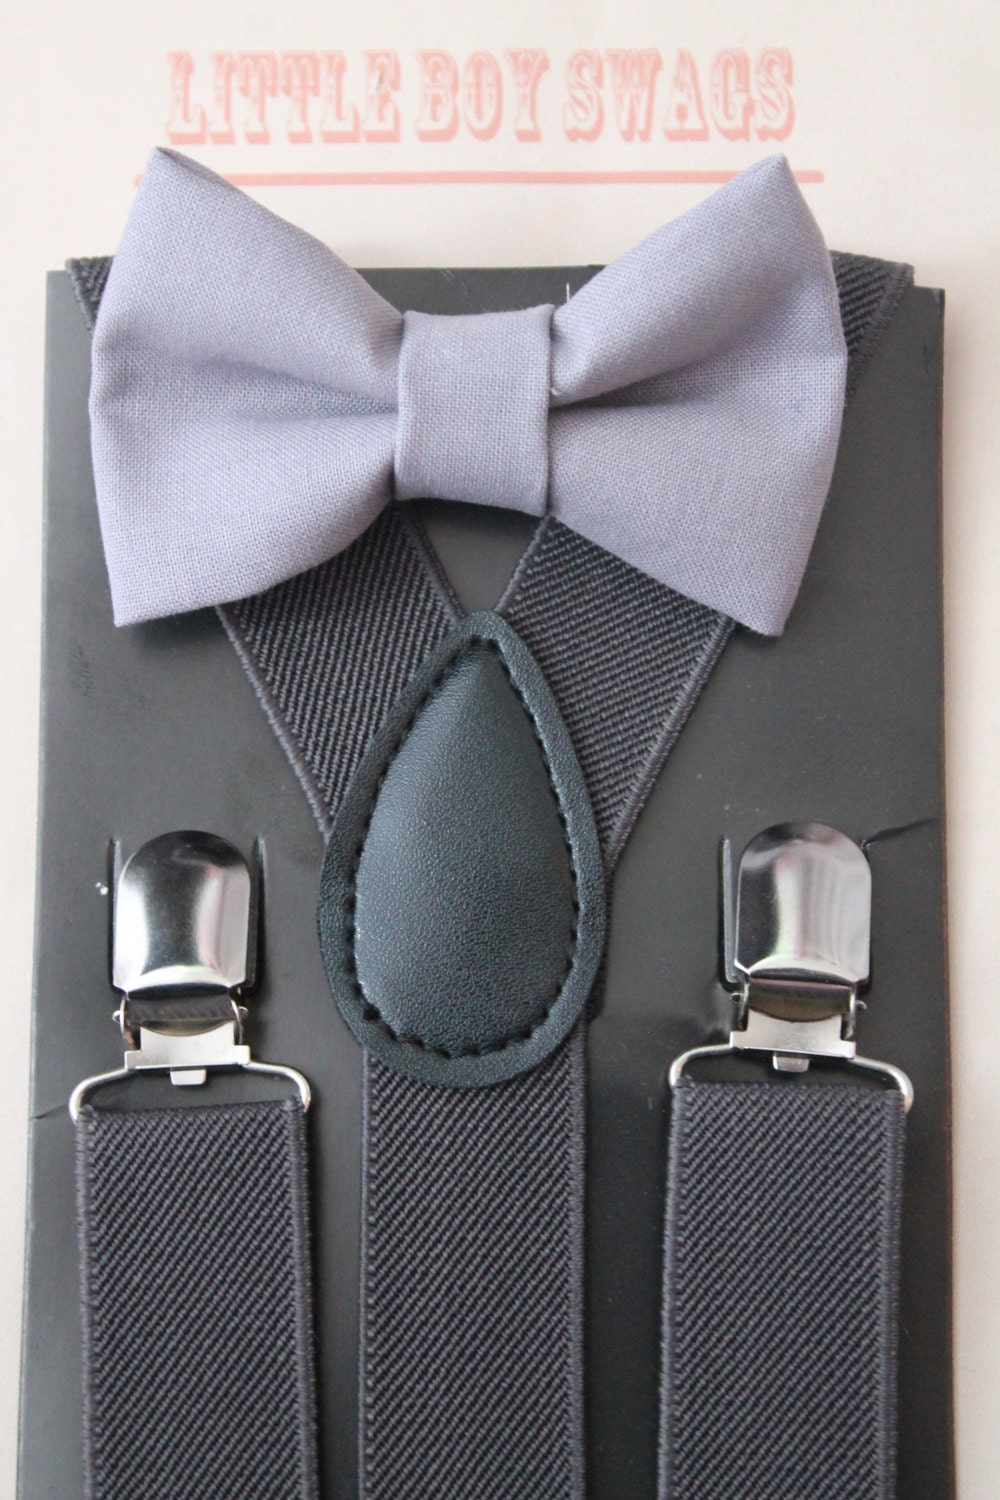 Grey or Gray Bow Ties - Men who have the fortune of having their hair turn silvery can make the most of it by grabbing gray bowties and wearing them together with an appropriate suit on all formal occasions. But grey bowties are not limited to men with silvery hair. They also go well with a whole range of suits, from white, to argent, to black.